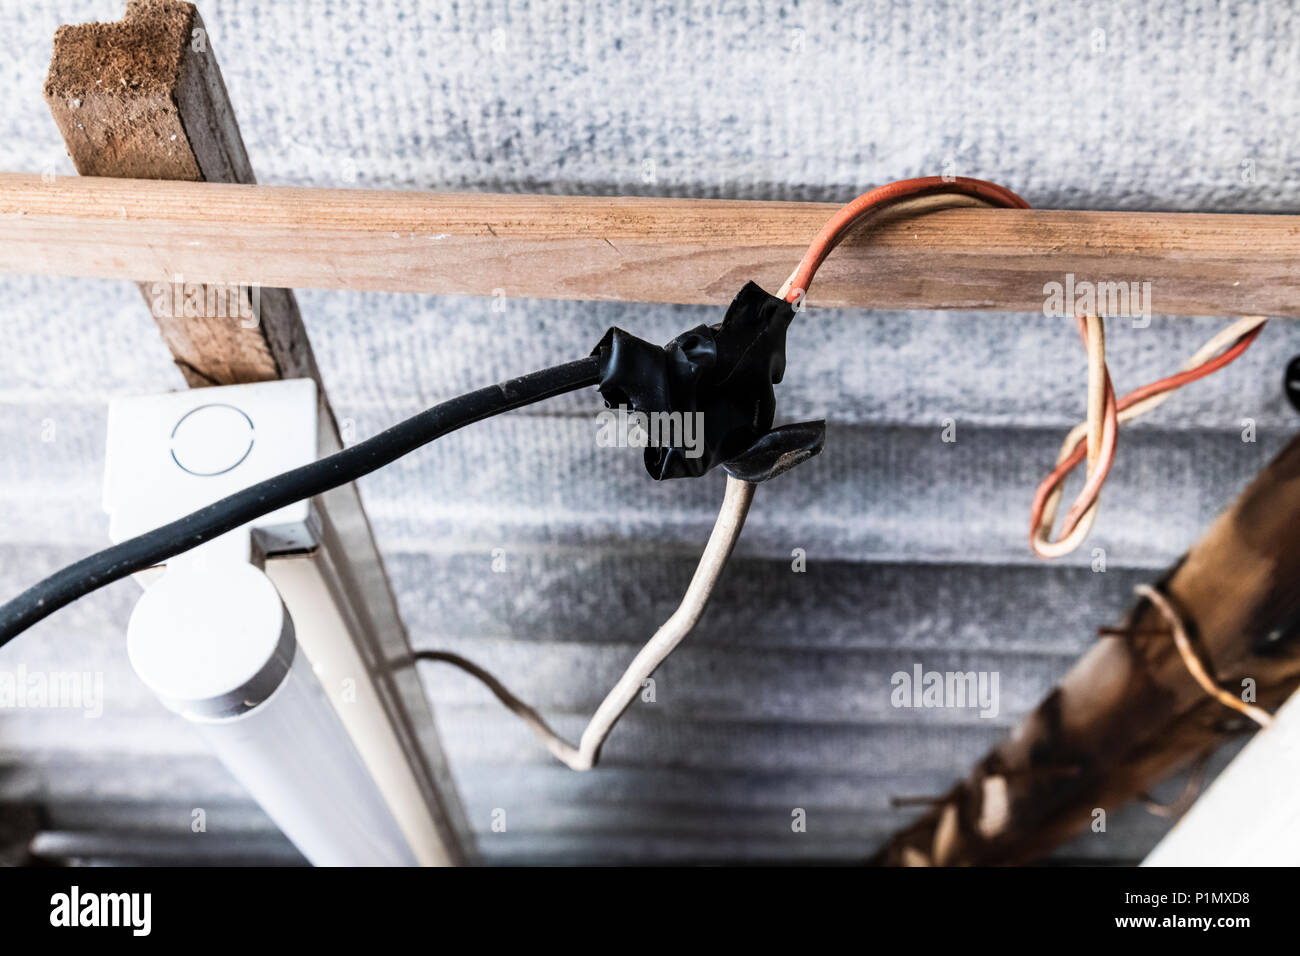 Diy Shed Stock Photos Images Alamy Electricity To A Electrical Projects Backyard Wiring Dangerous Electric In An Old Delapidated Image